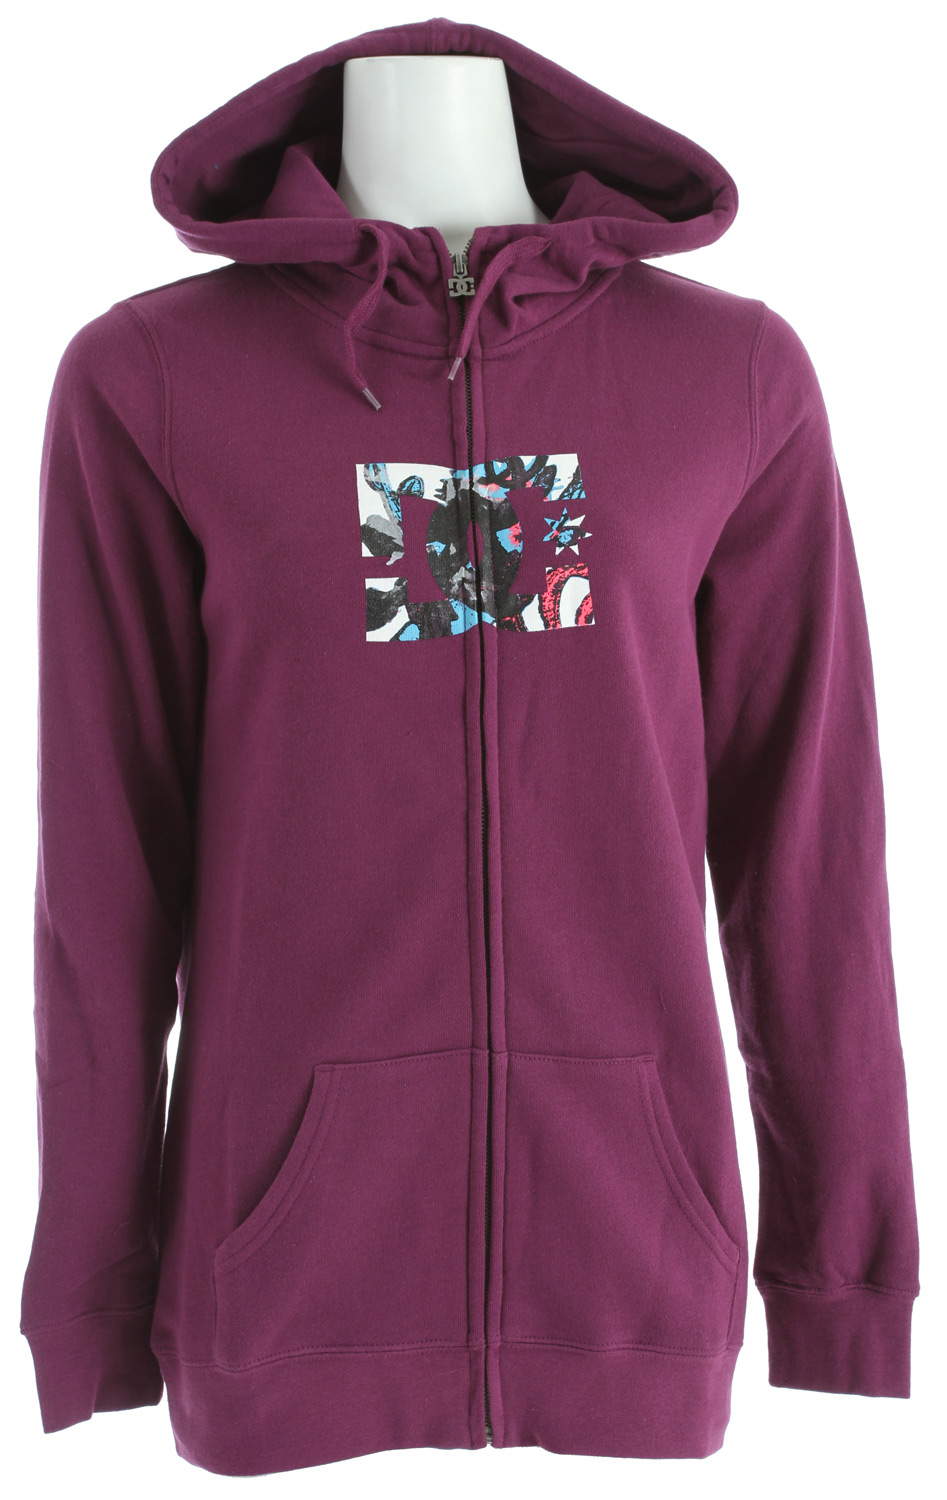 Skateboard Key Features of the DC Snow FZ Hoodie: Long fit fleece with full zip hood 80% cotton / 20% polyester - $24.95